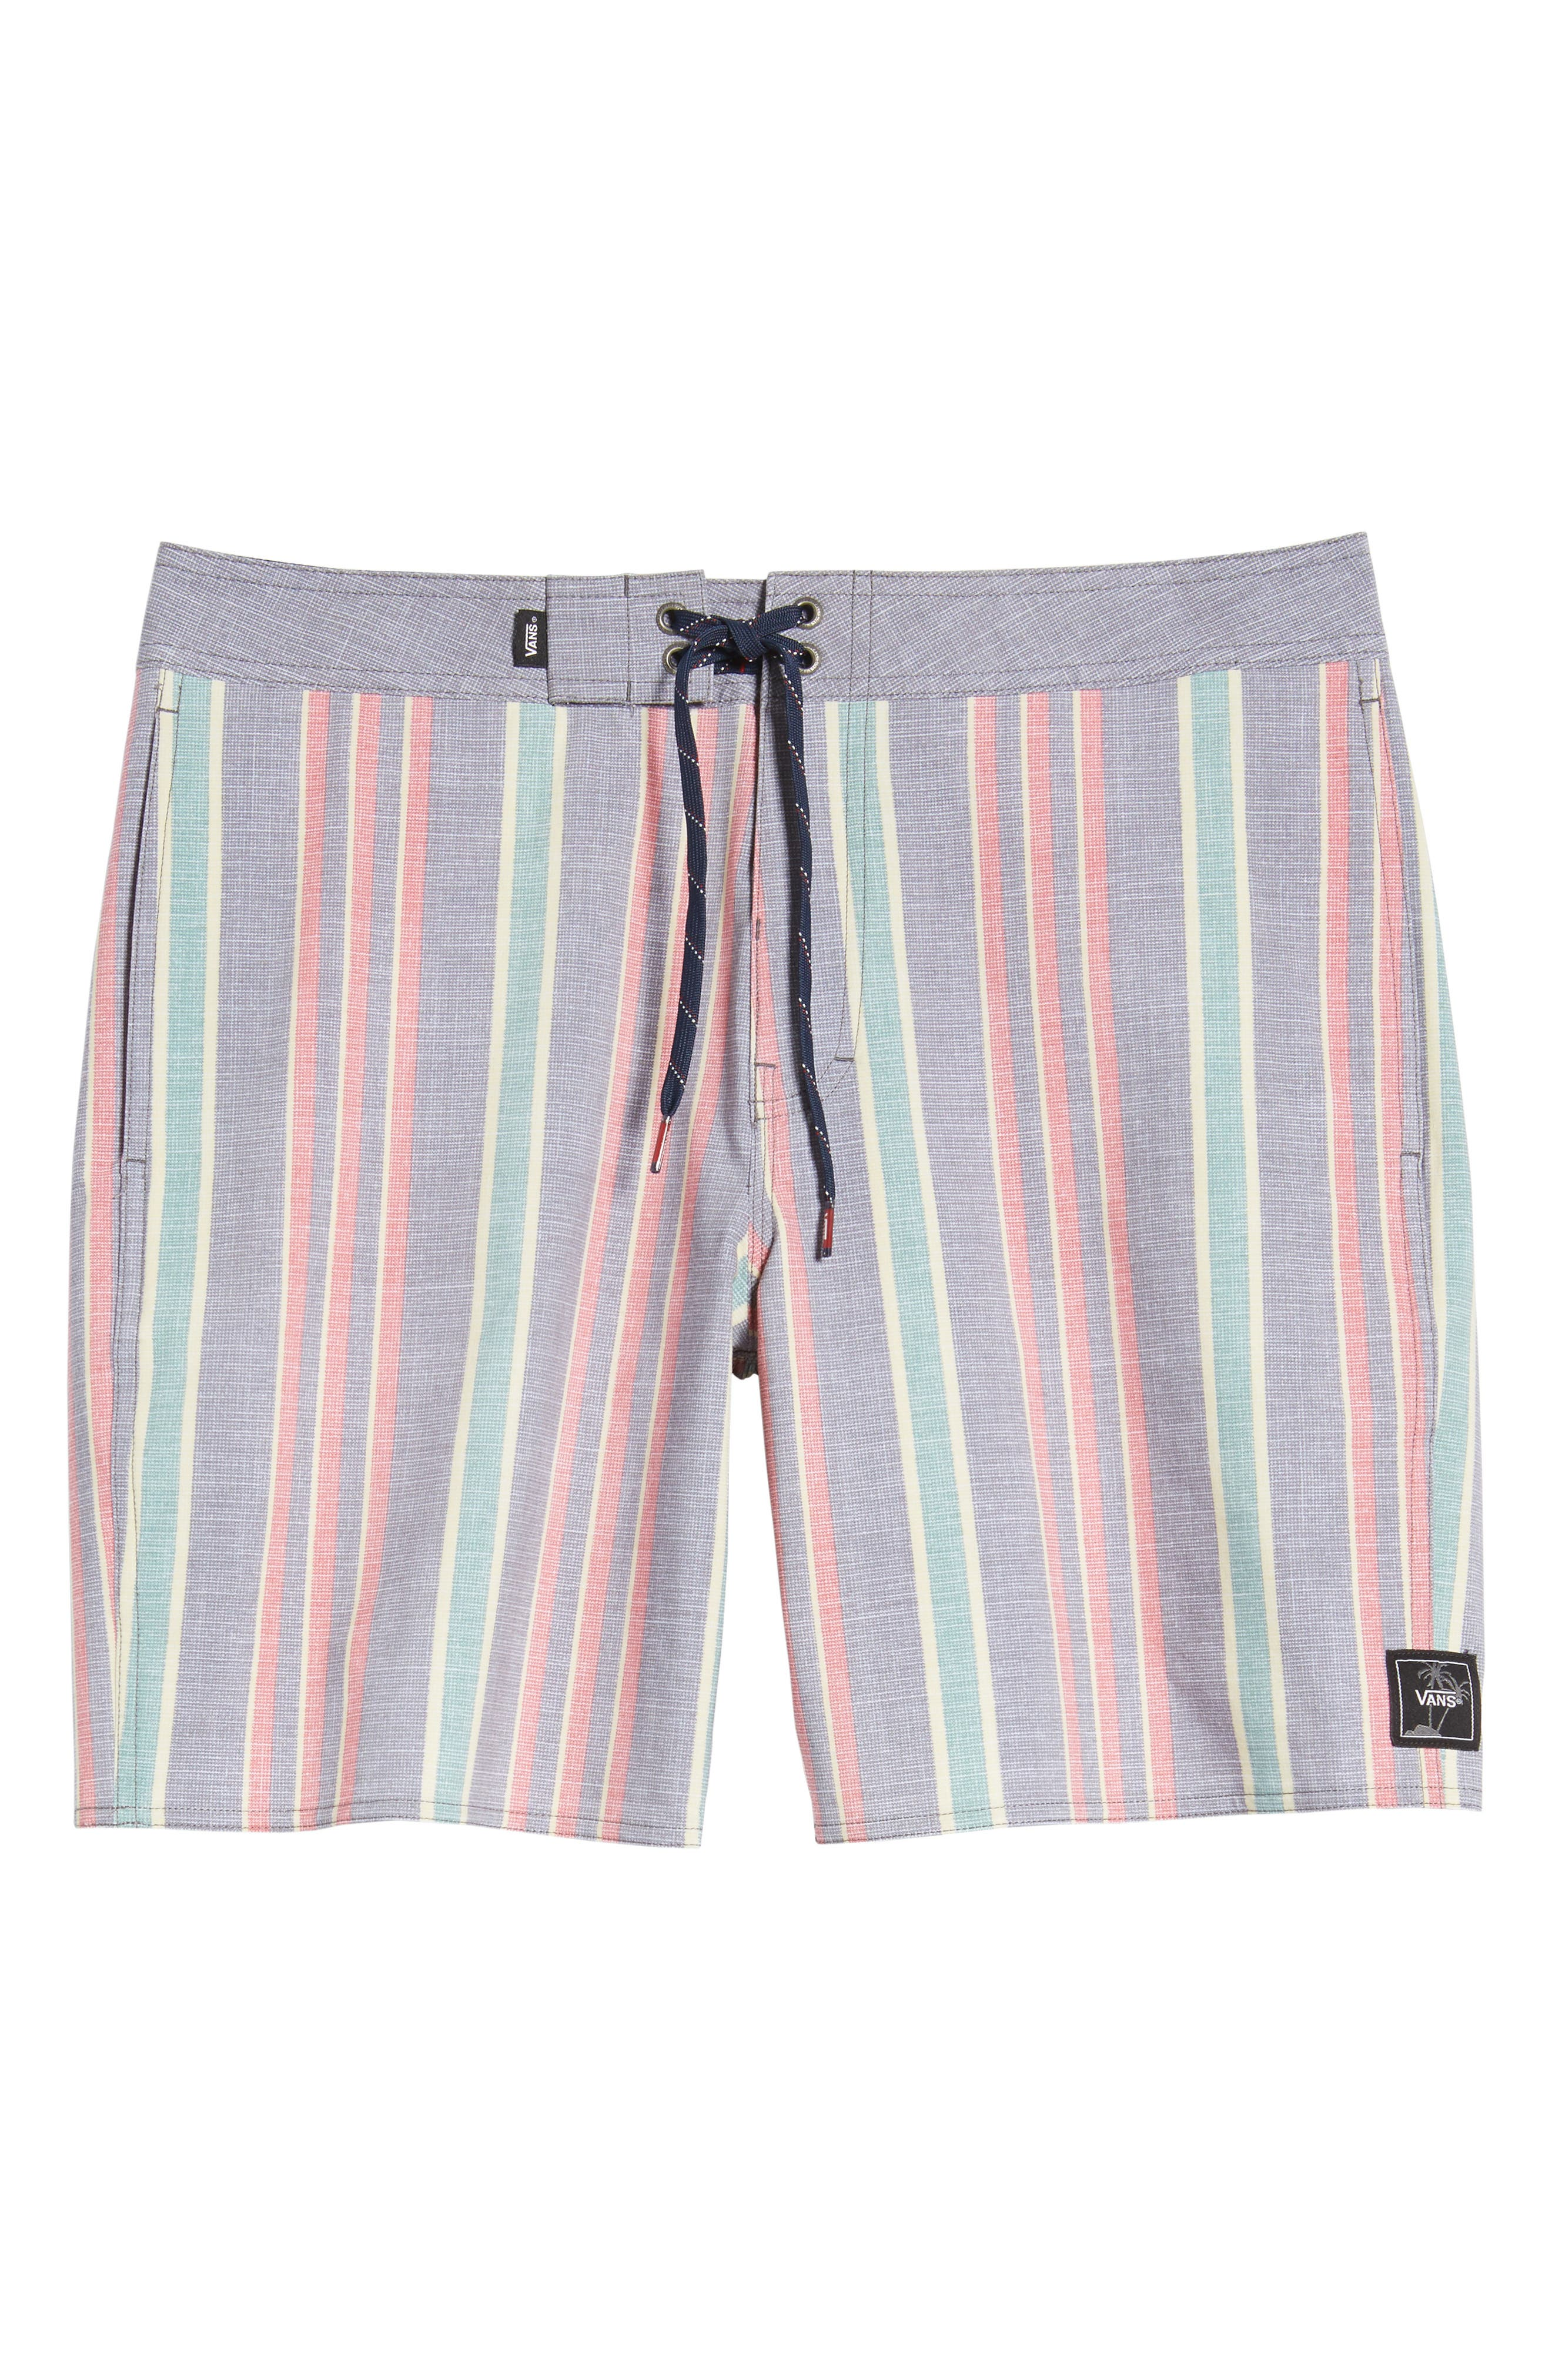 Vertical Stripe Board Shorts,                             Alternate thumbnail 6, color,                             Dress Blues